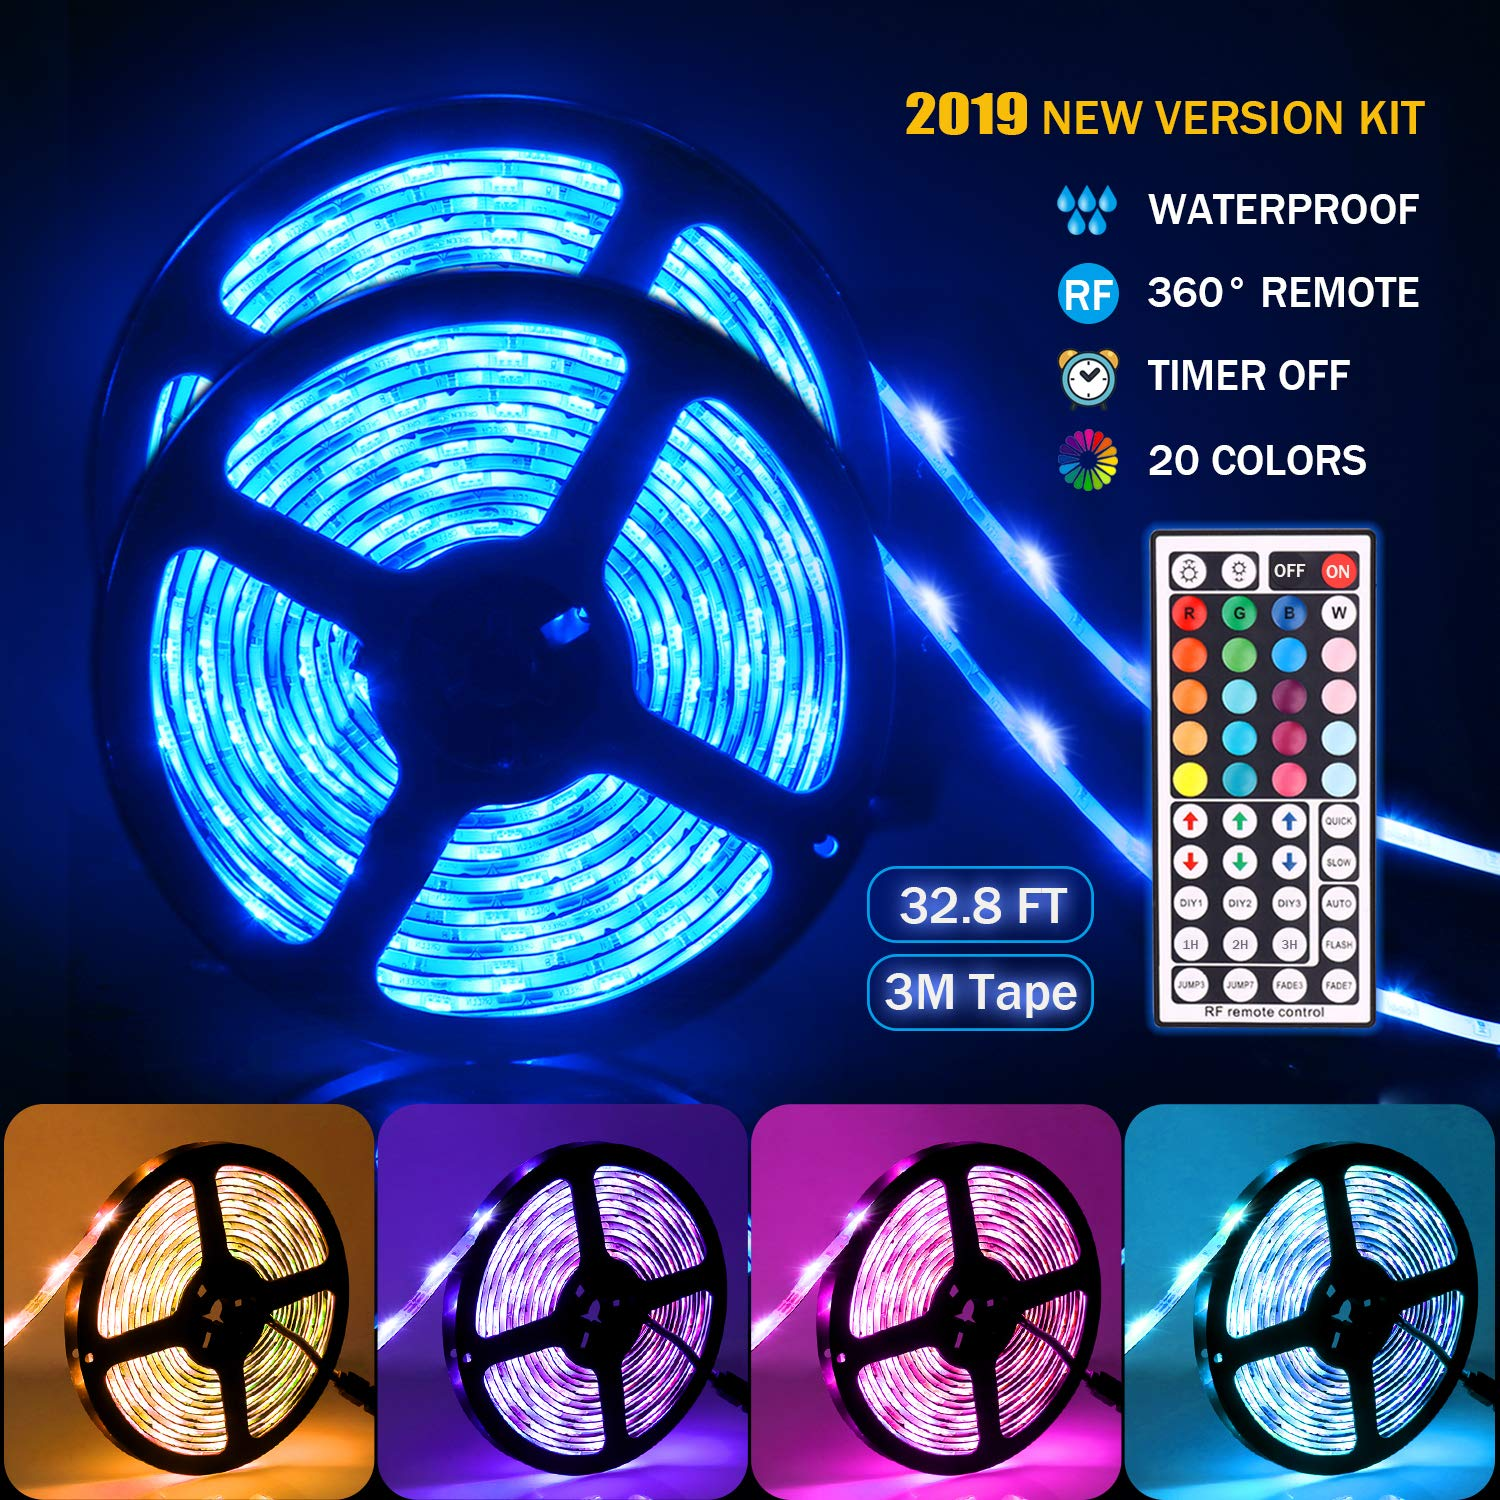 Led strip lights,Tenmiro 32.8ft Led Strip Lights With 44key RF Remote Controller,Waterproof Color Changing RGB SMD 5050 300 LEDs Rope Lights, DC 12V5A Power Safety For Home Outdoor Lighting Decoration